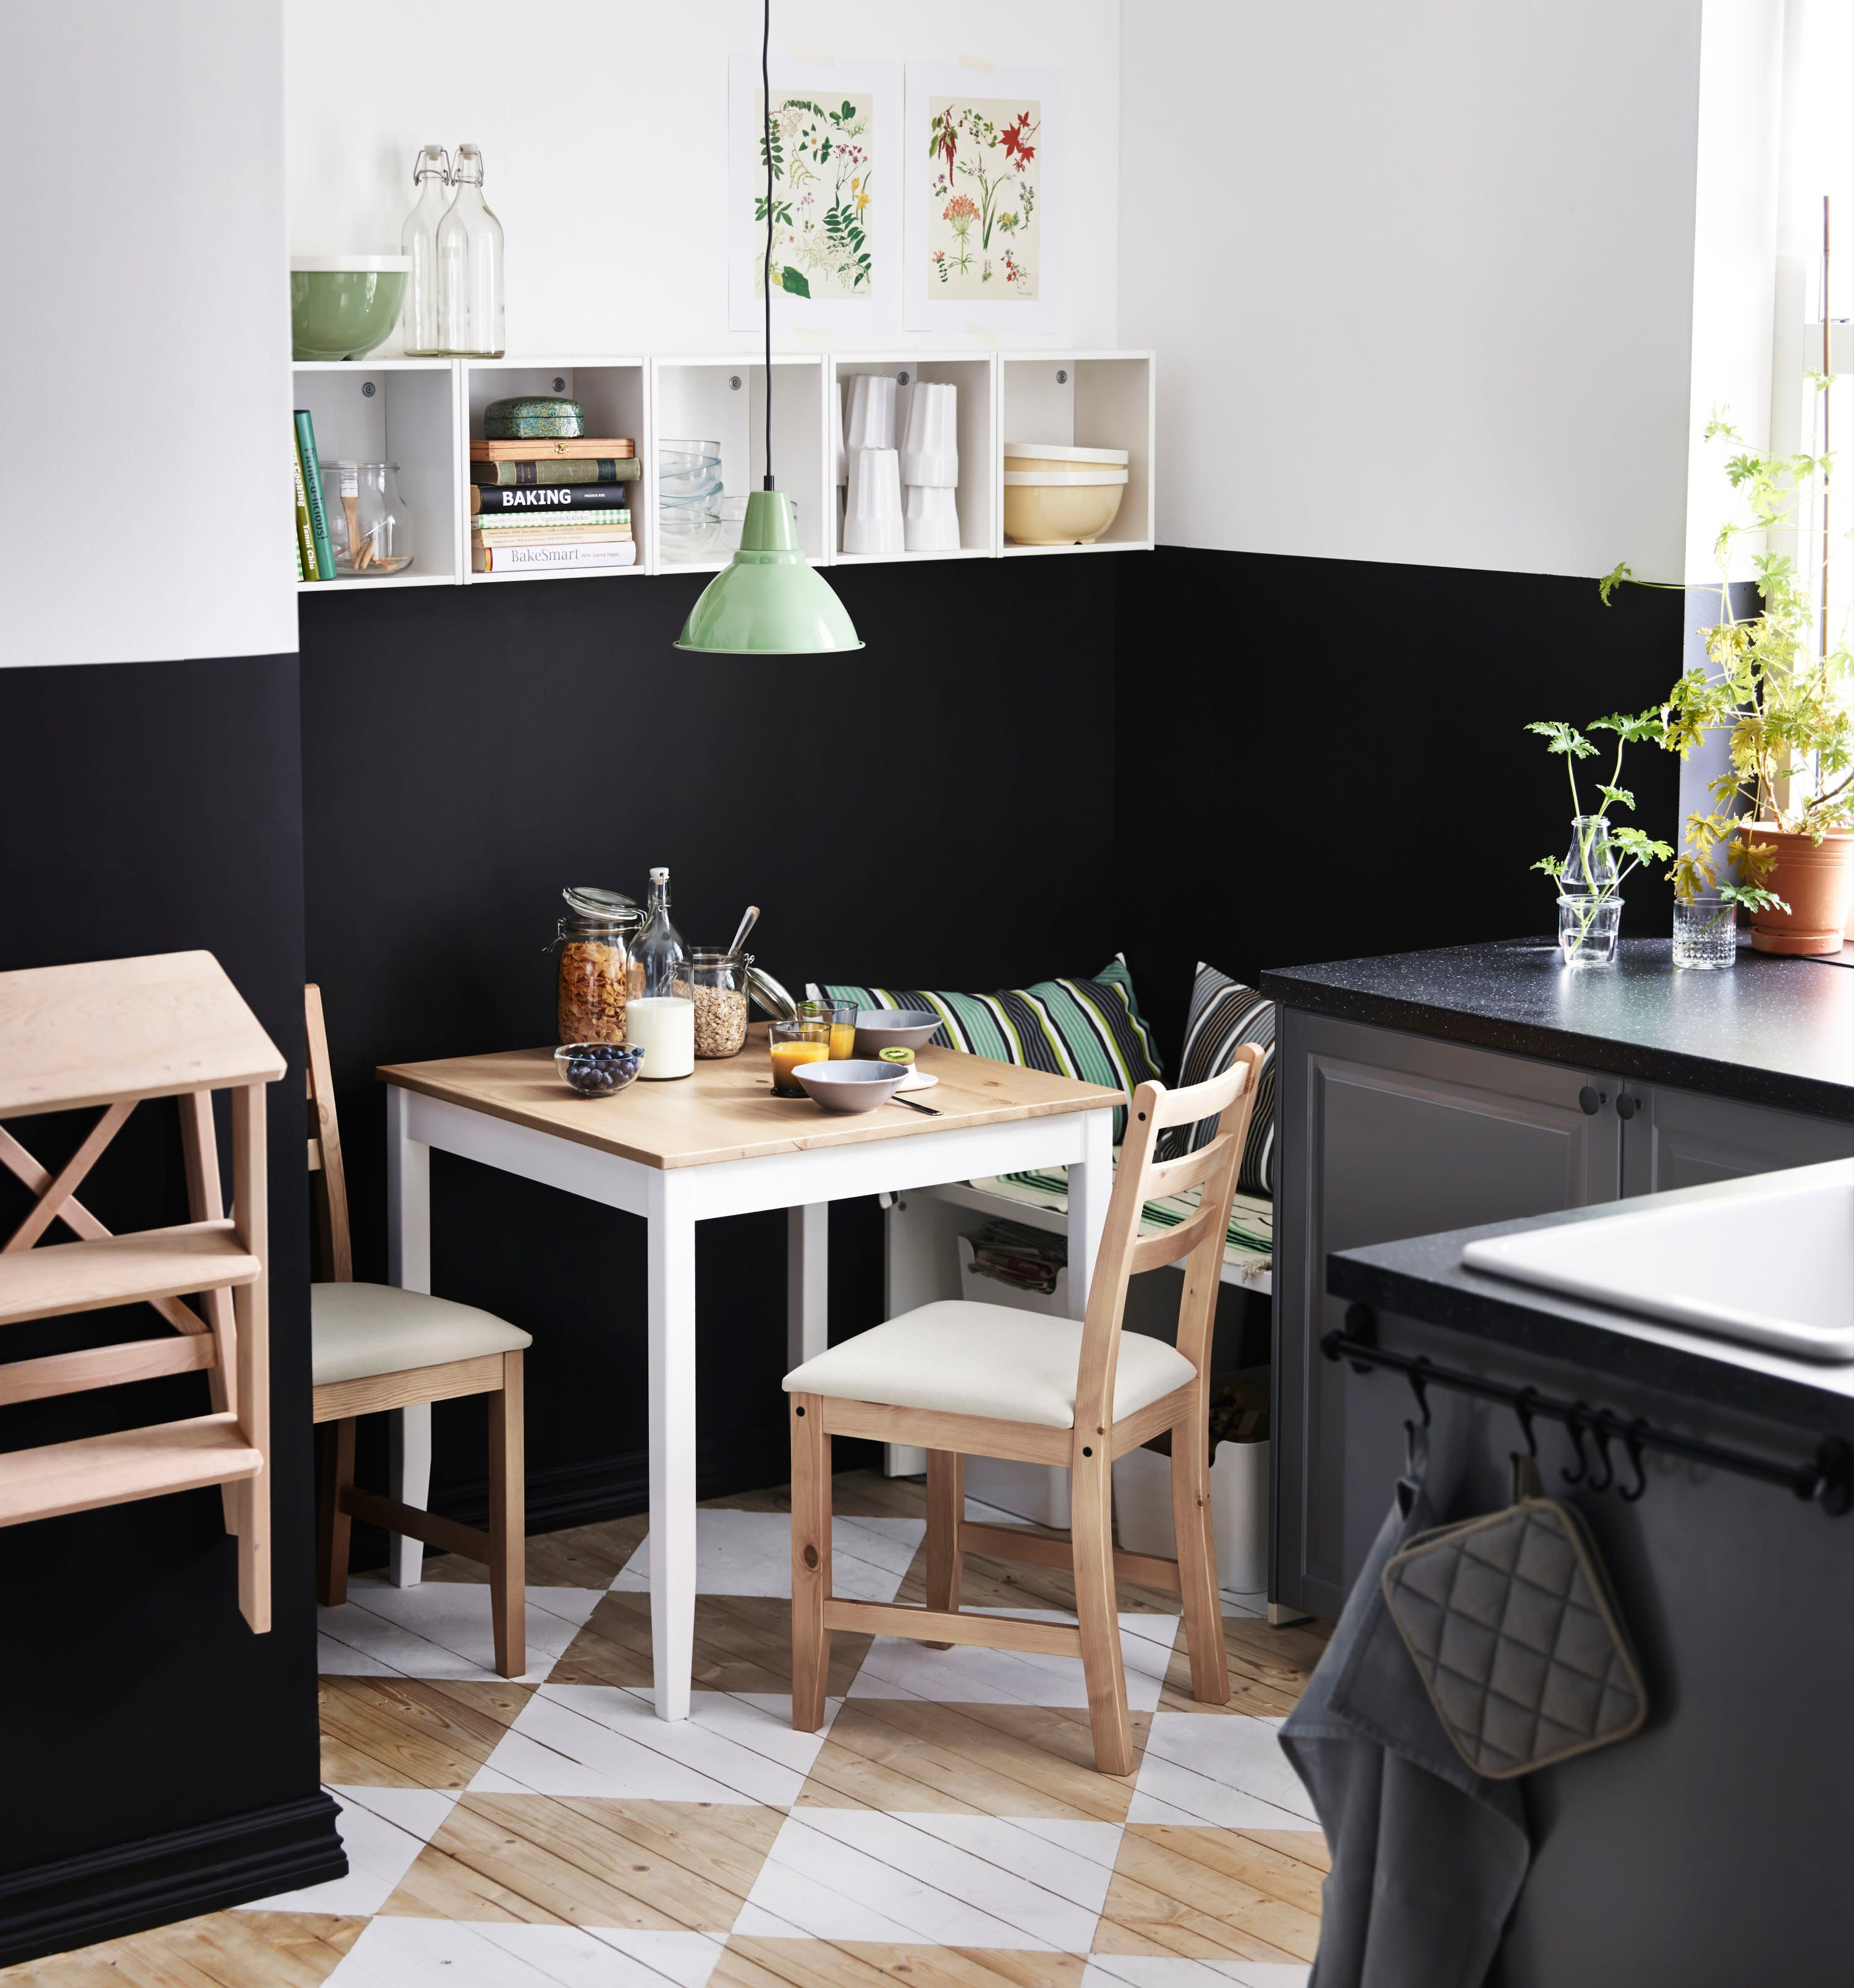 10 Kitchen Ideas We Picked Up from IKEA's New 2015 Catalog: gallery image 1